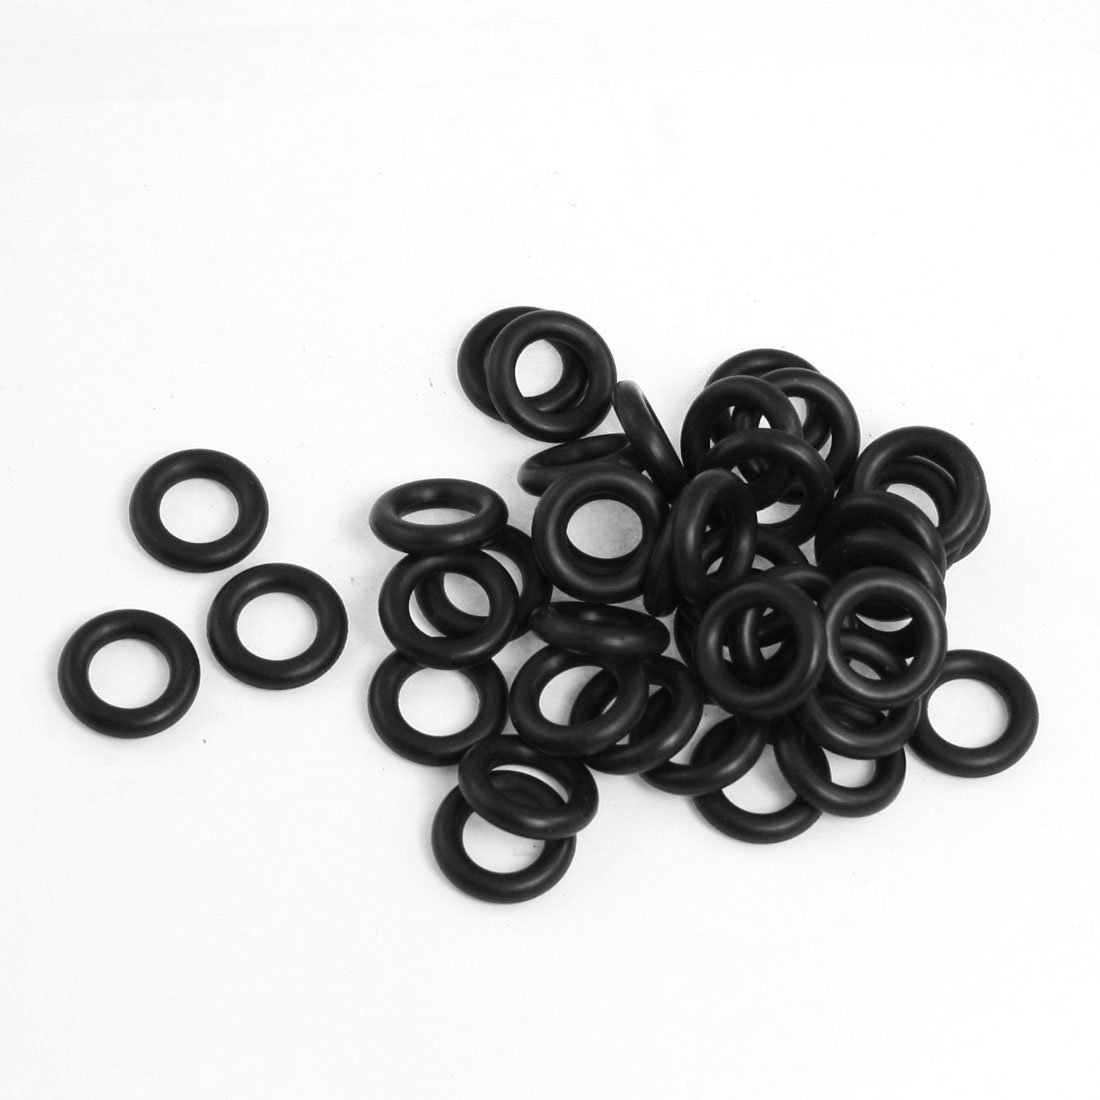 uxcell 50Pcs Black 16mm x 1mm Nitrile Rubber O Ring NBR Oil Sealing Grommets